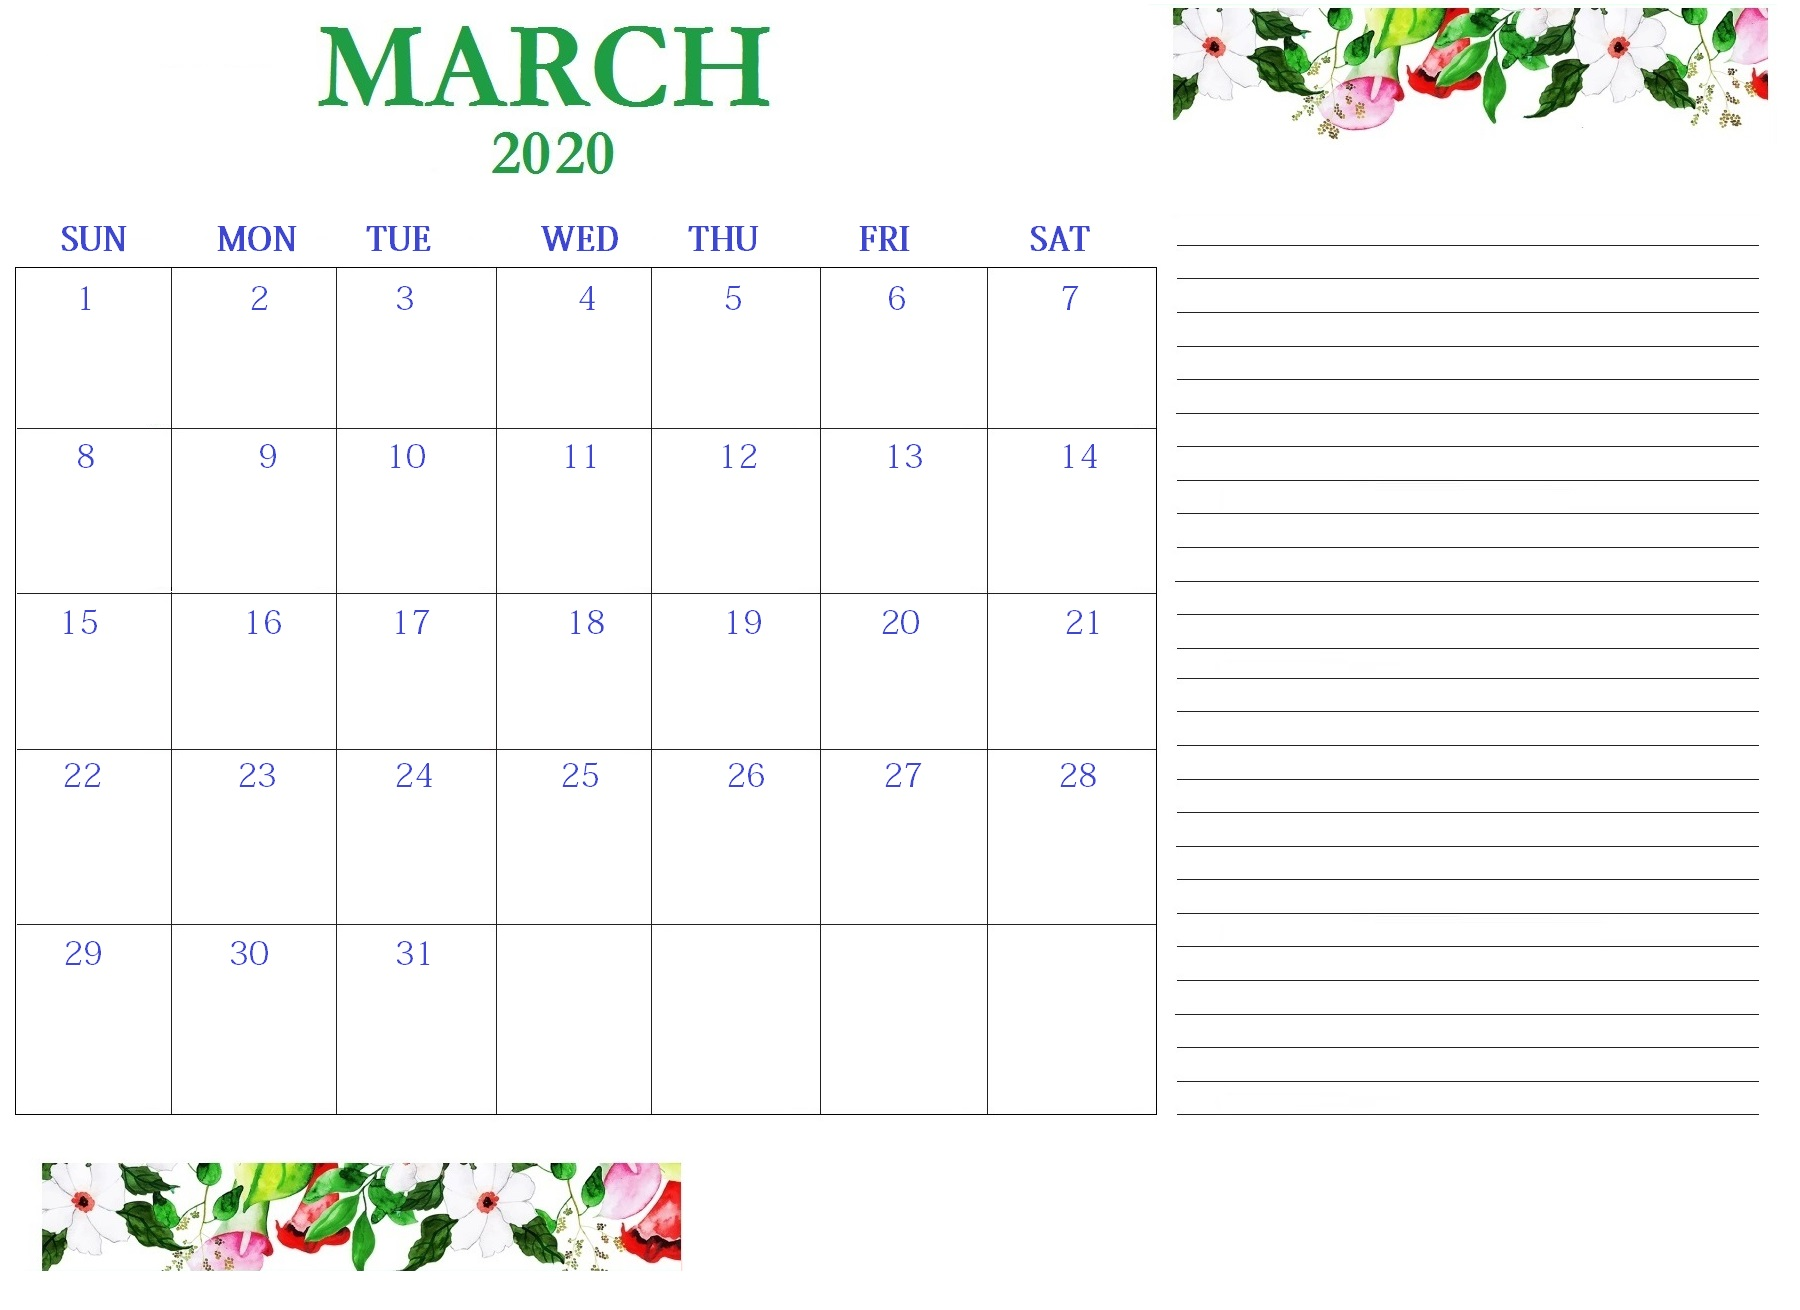 Floral March 2020 Desk Calendar with Notes